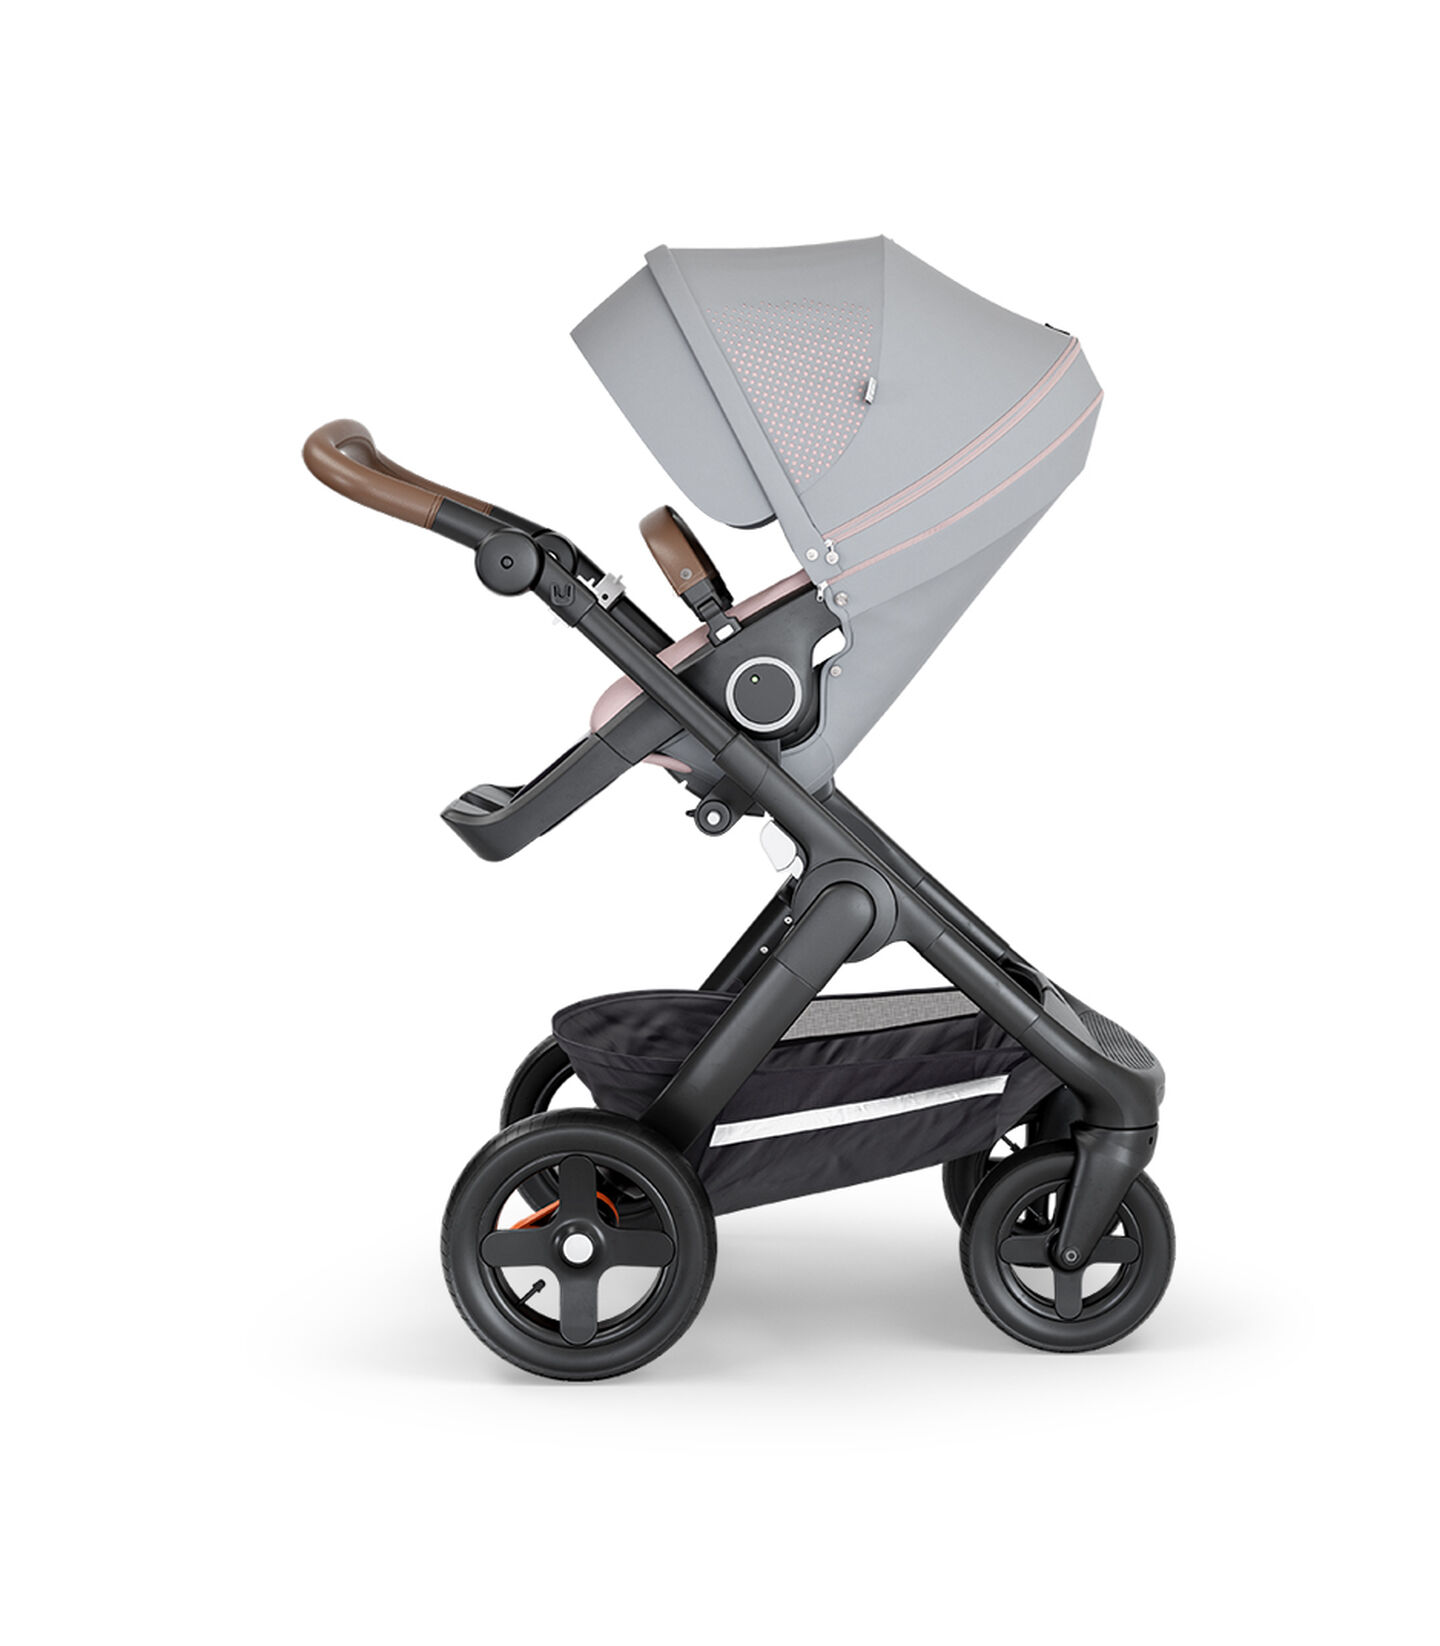 Stokke® Trailz™ with Black Chassis, Brown Leatherette and Terrain Wheels. Stokke® Stroller Seat, Athleisure Pink.